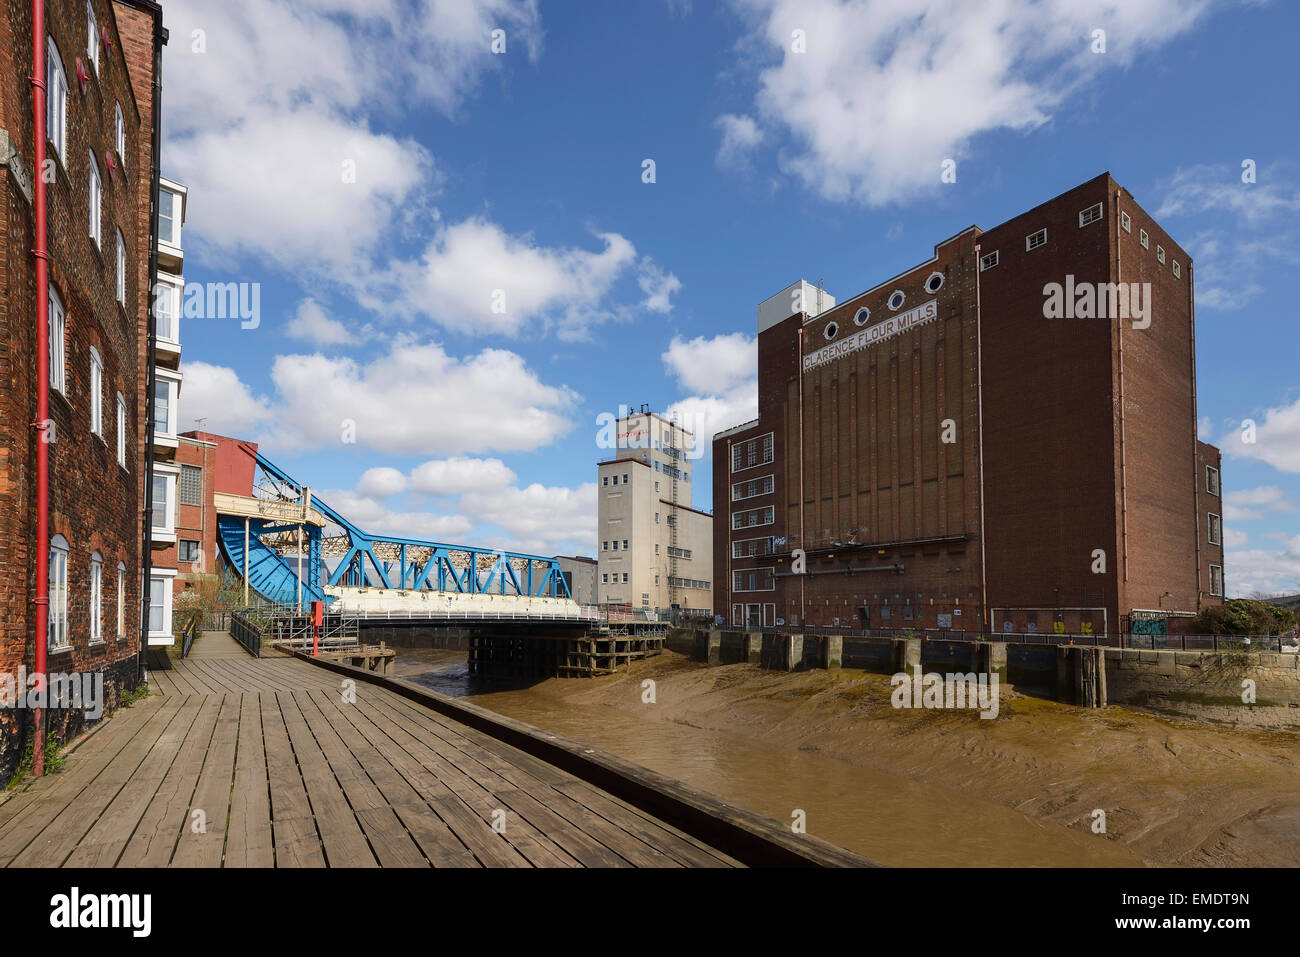 The drypool bridge Shotwell tower and Clarance Flour Mills buildings alongside the River Hull in Hull city centre - Stock Image